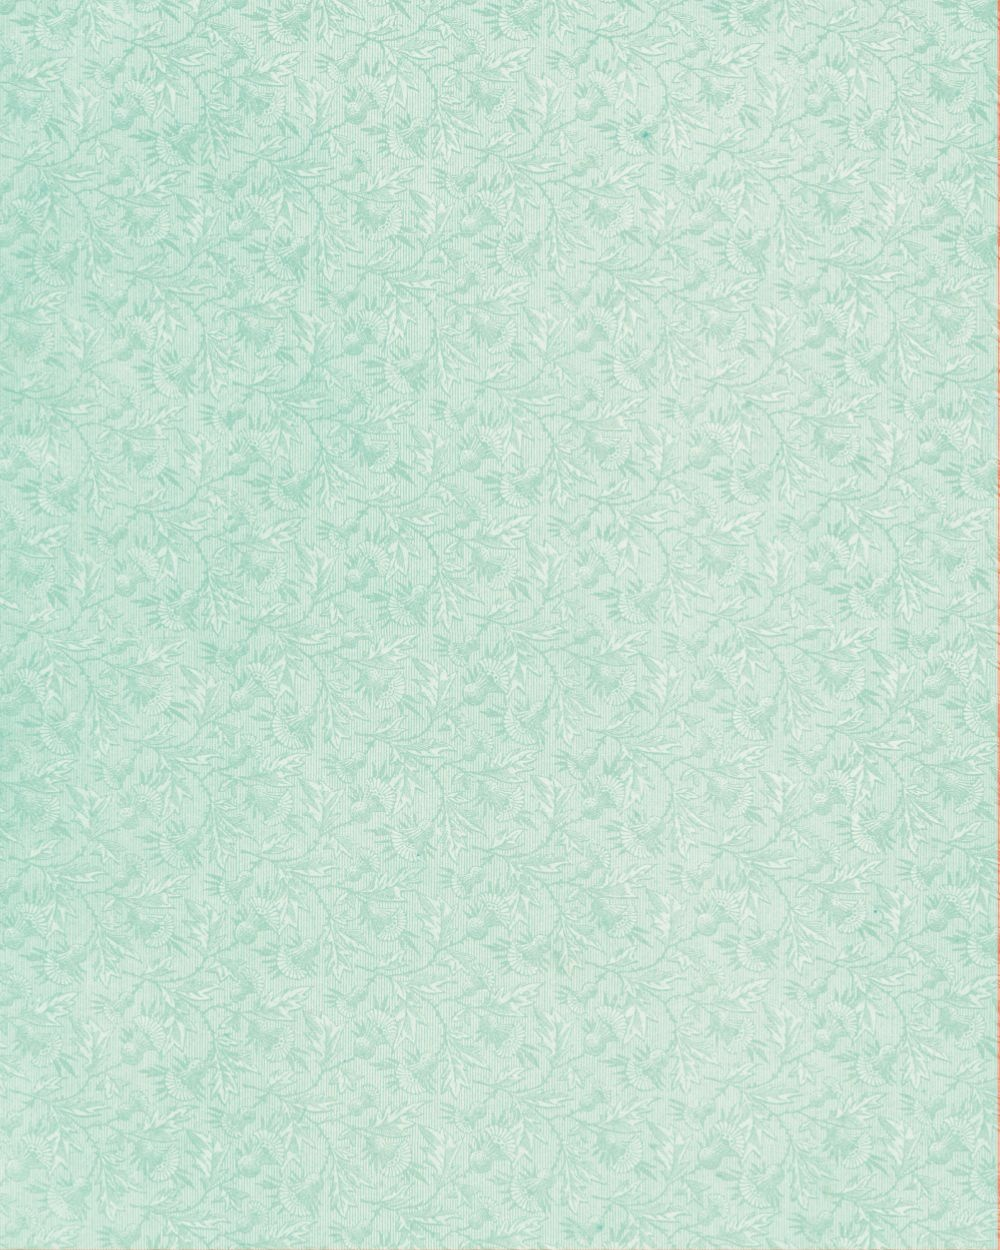 Free Floral Paper Backgrounds | Backgrounds! | Ceramic Subway Tile - Free Printable Backgrounds For Paper